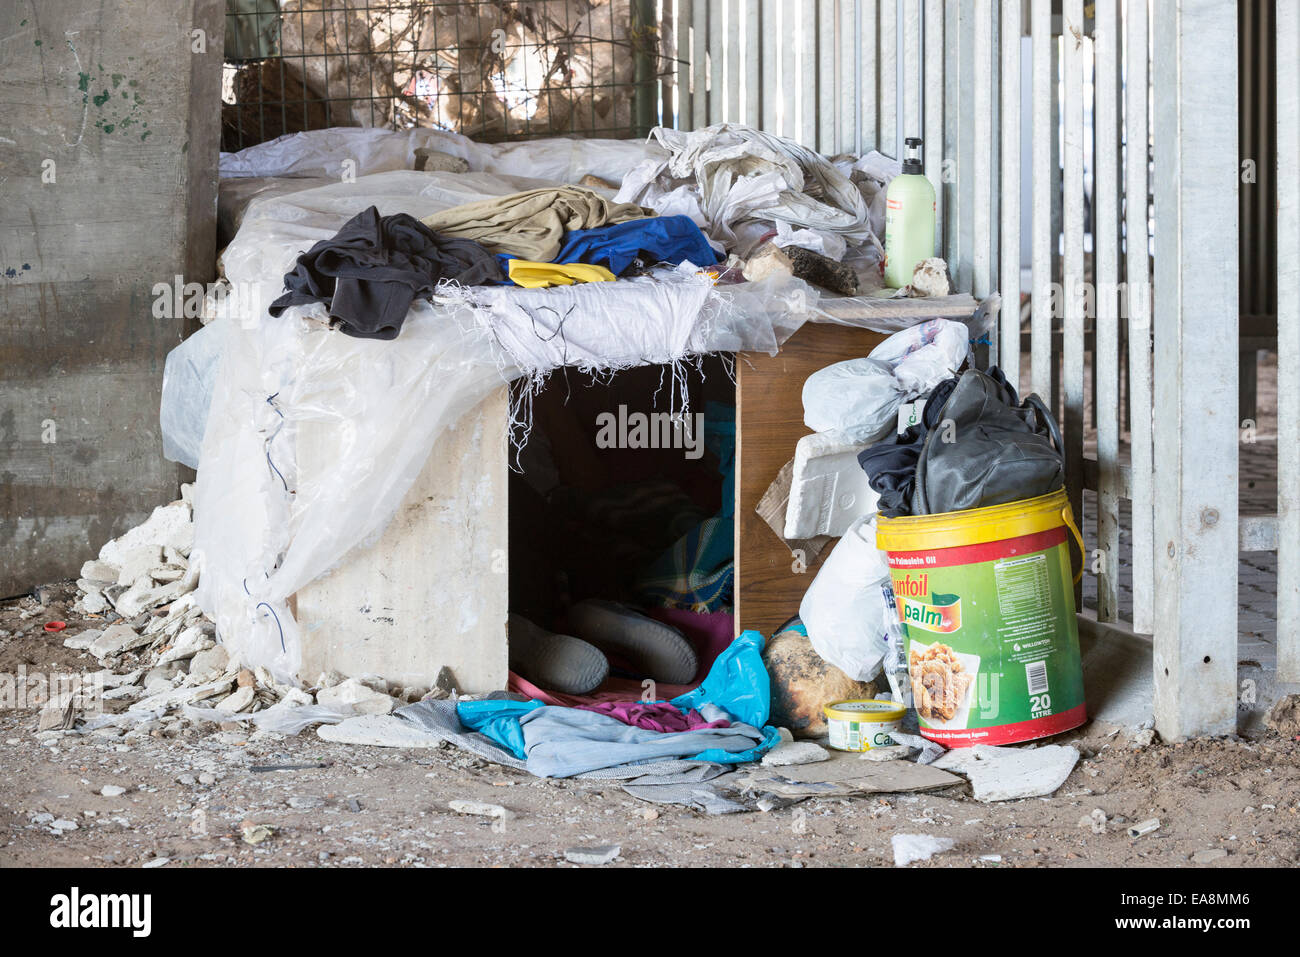 A homeless person sleeps in a makeshift shack, Cape Town, South Africa - Stock Image